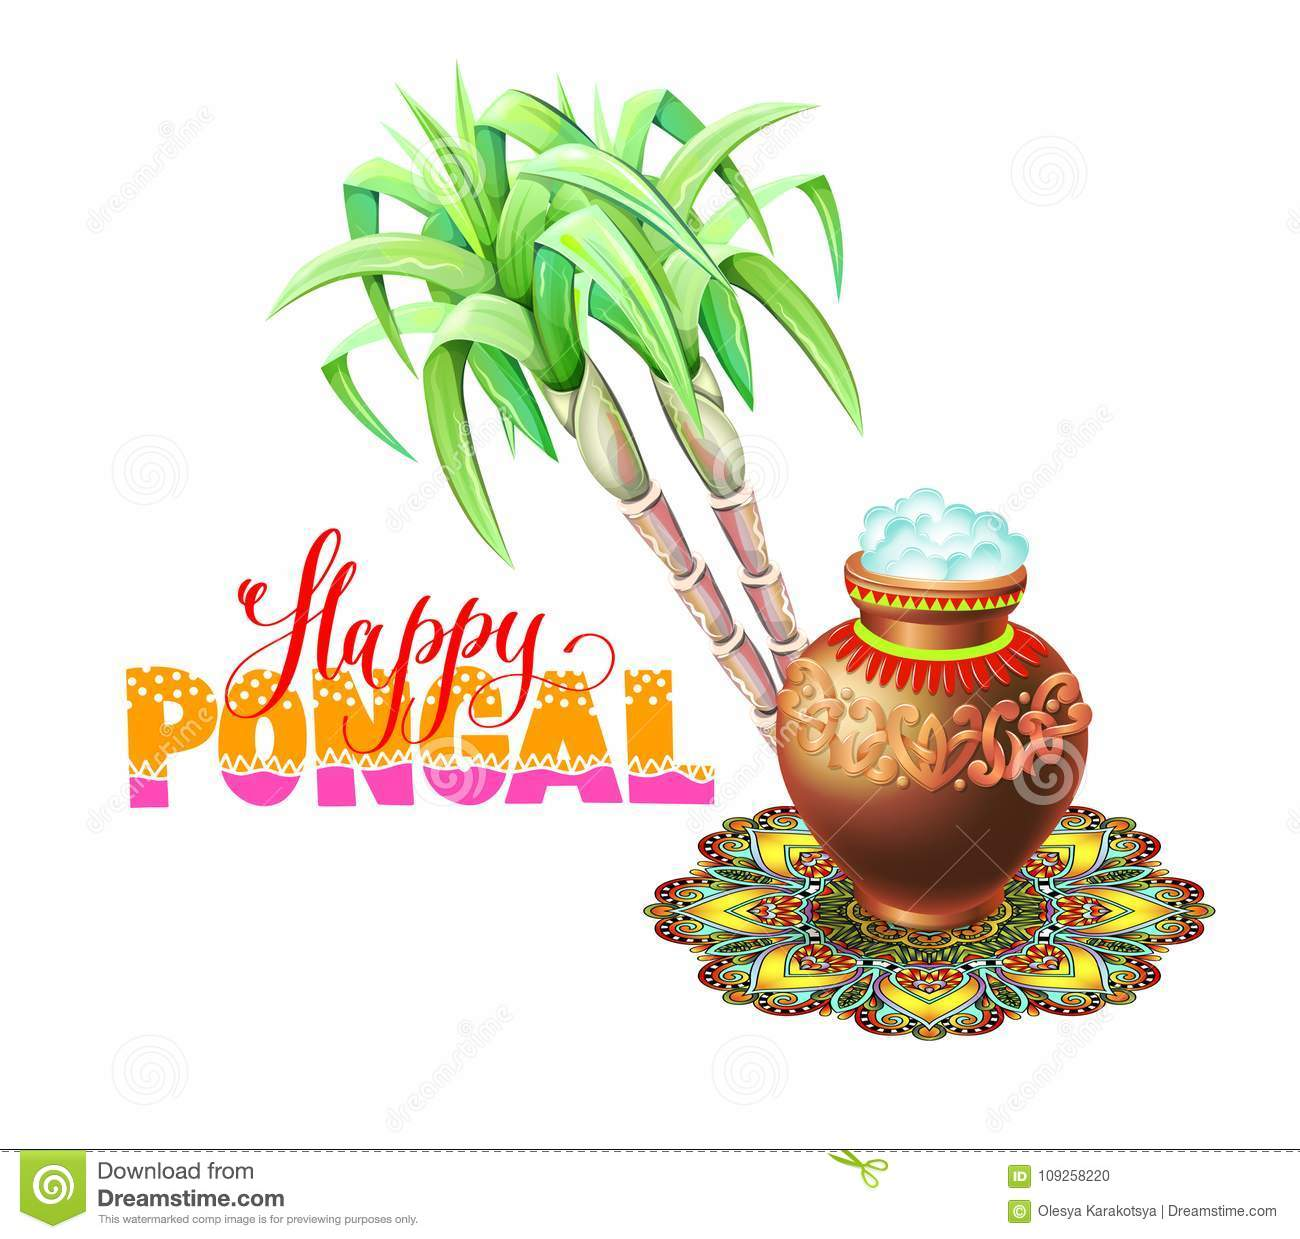 Happy pongal greeting card to south indian winter holiday design download happy pongal greeting card to south indian winter holiday design stock vector illustration of m4hsunfo